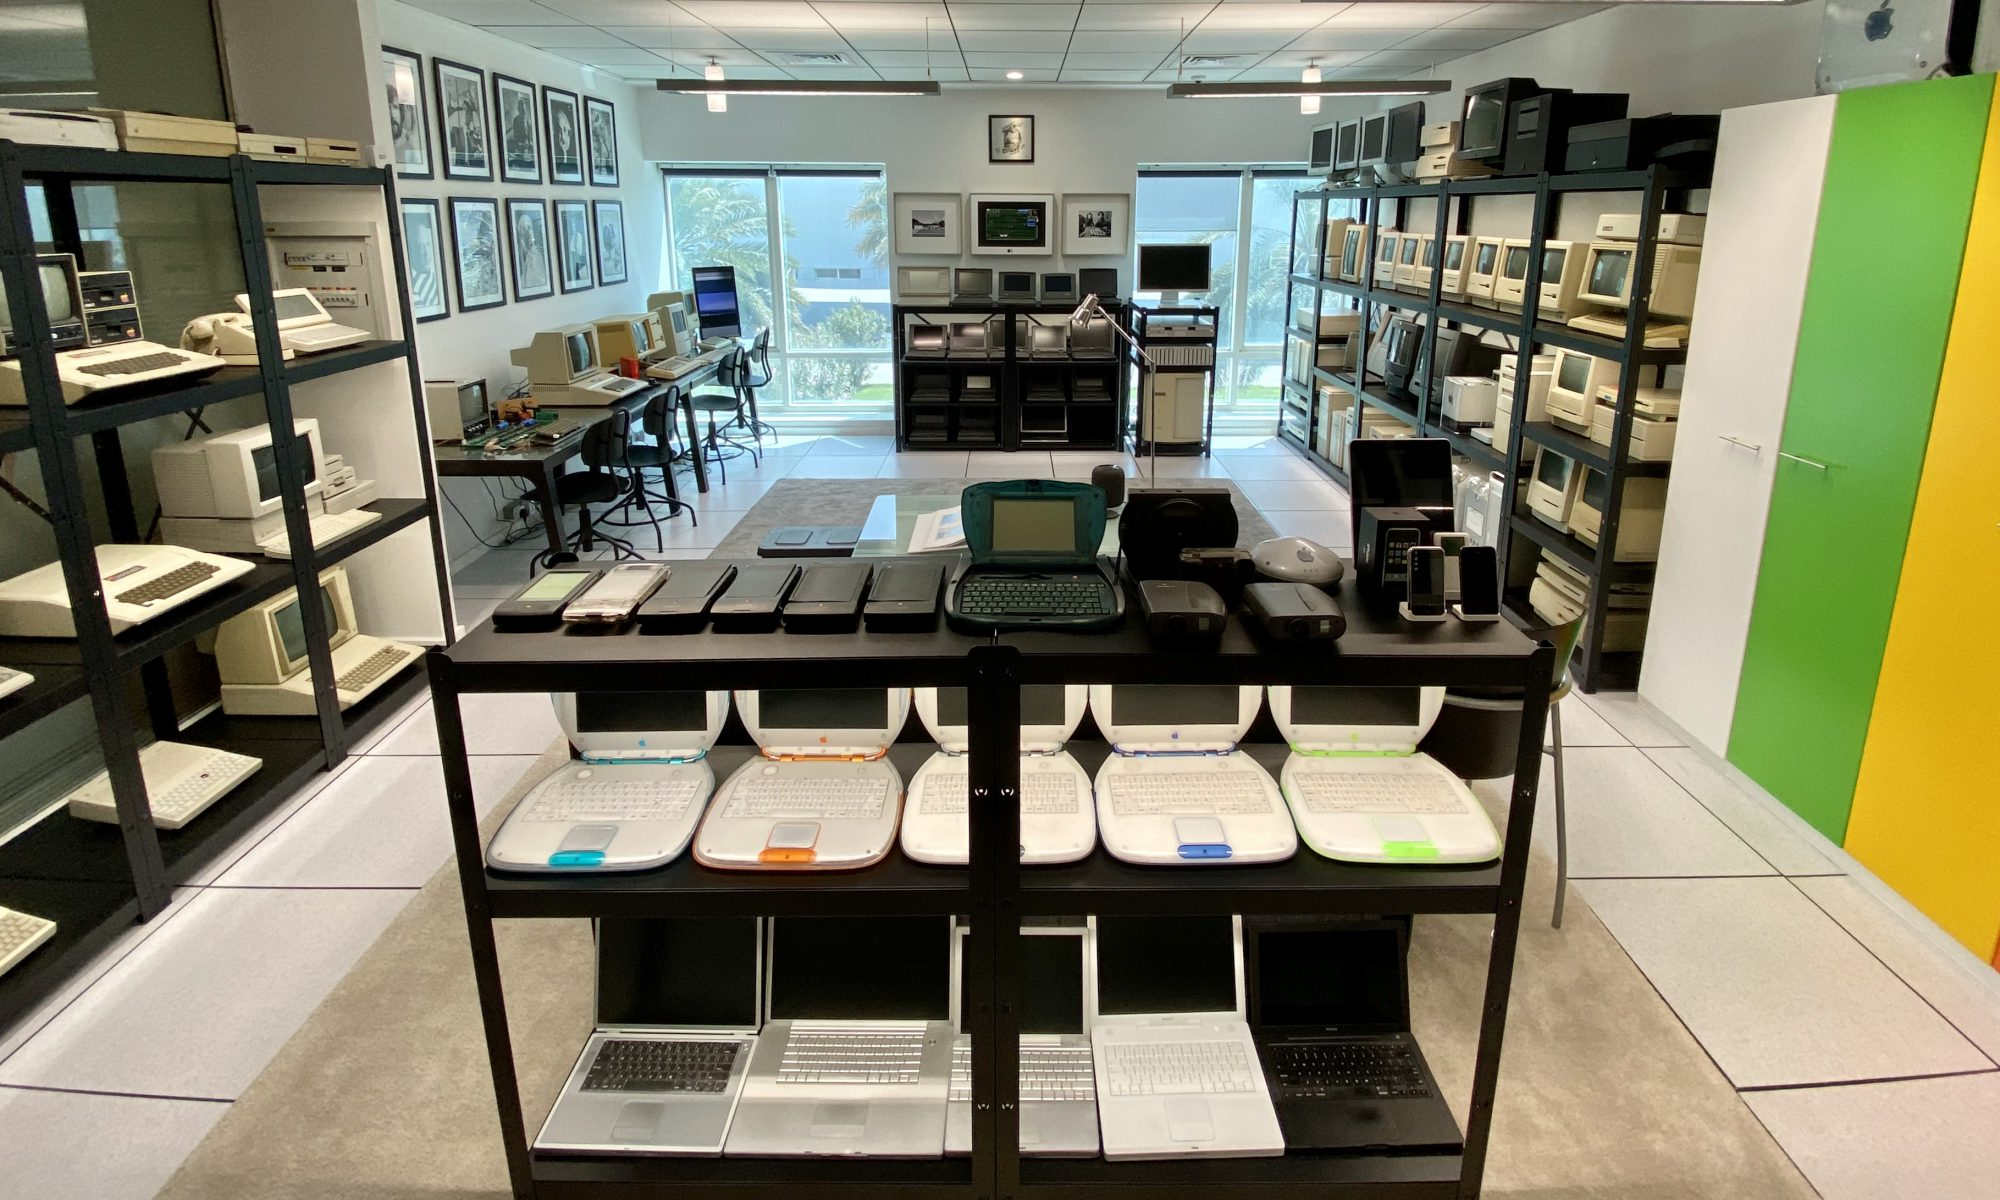 Overview photo of Jimmy Grewal's collection of vintage Apple computers